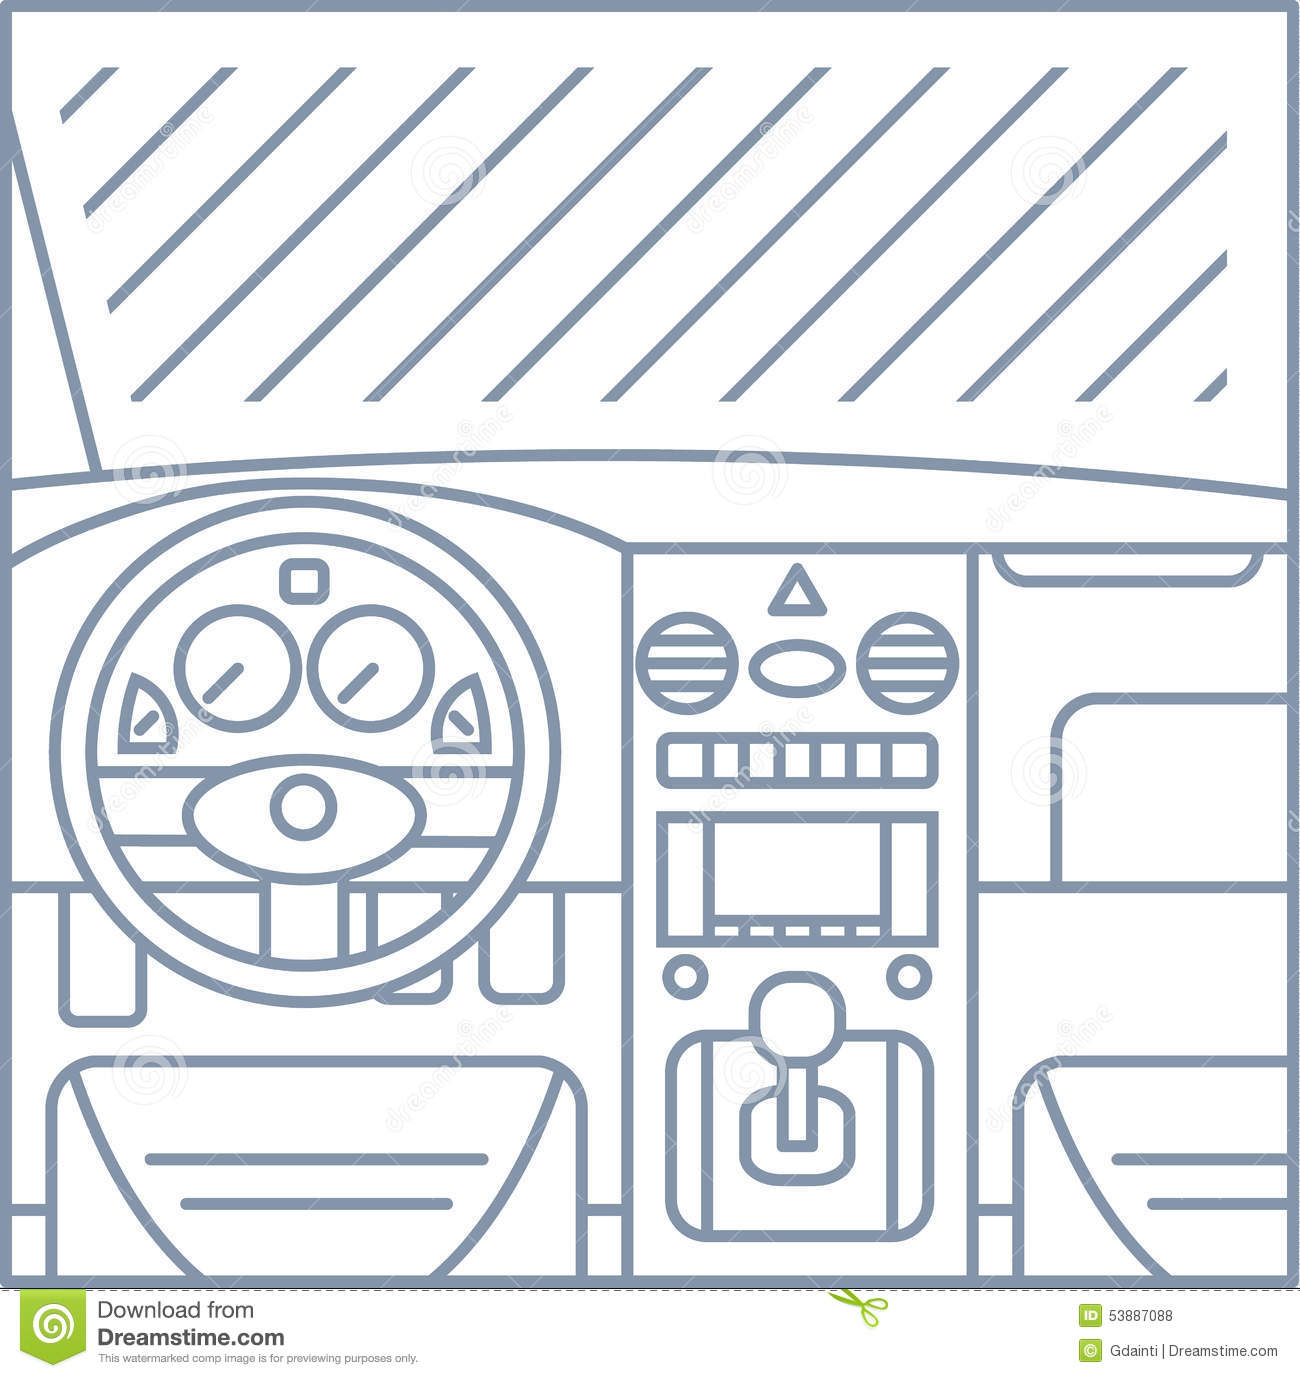 Drawing Vector Lines In Photo : Flat simple line illustration of car interior view stock